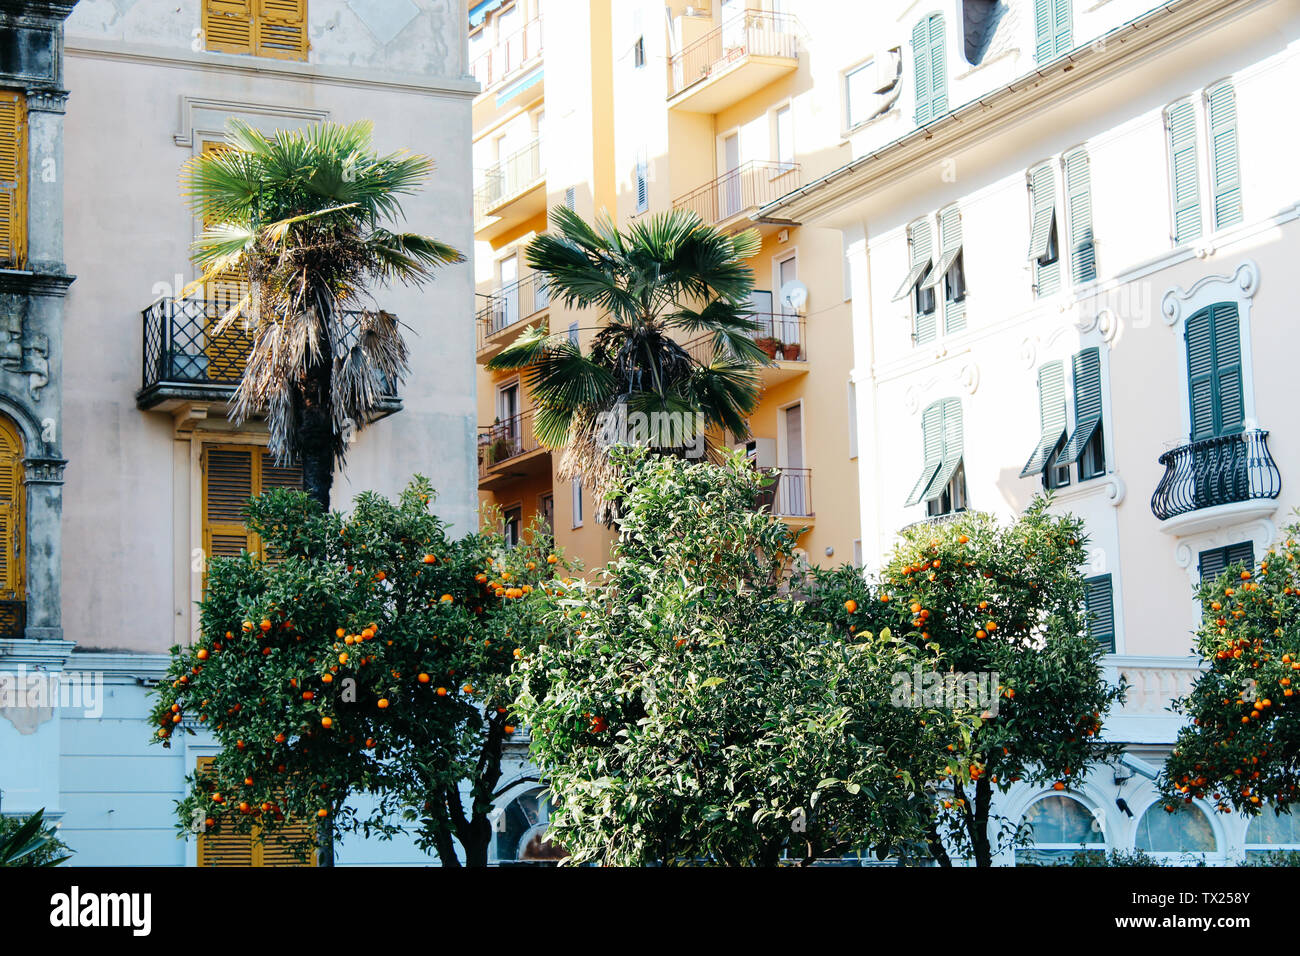 Rapallo, Italy - 03 27 2013: Palm trees, houses. View of the streets of Rapallo - Stock Image